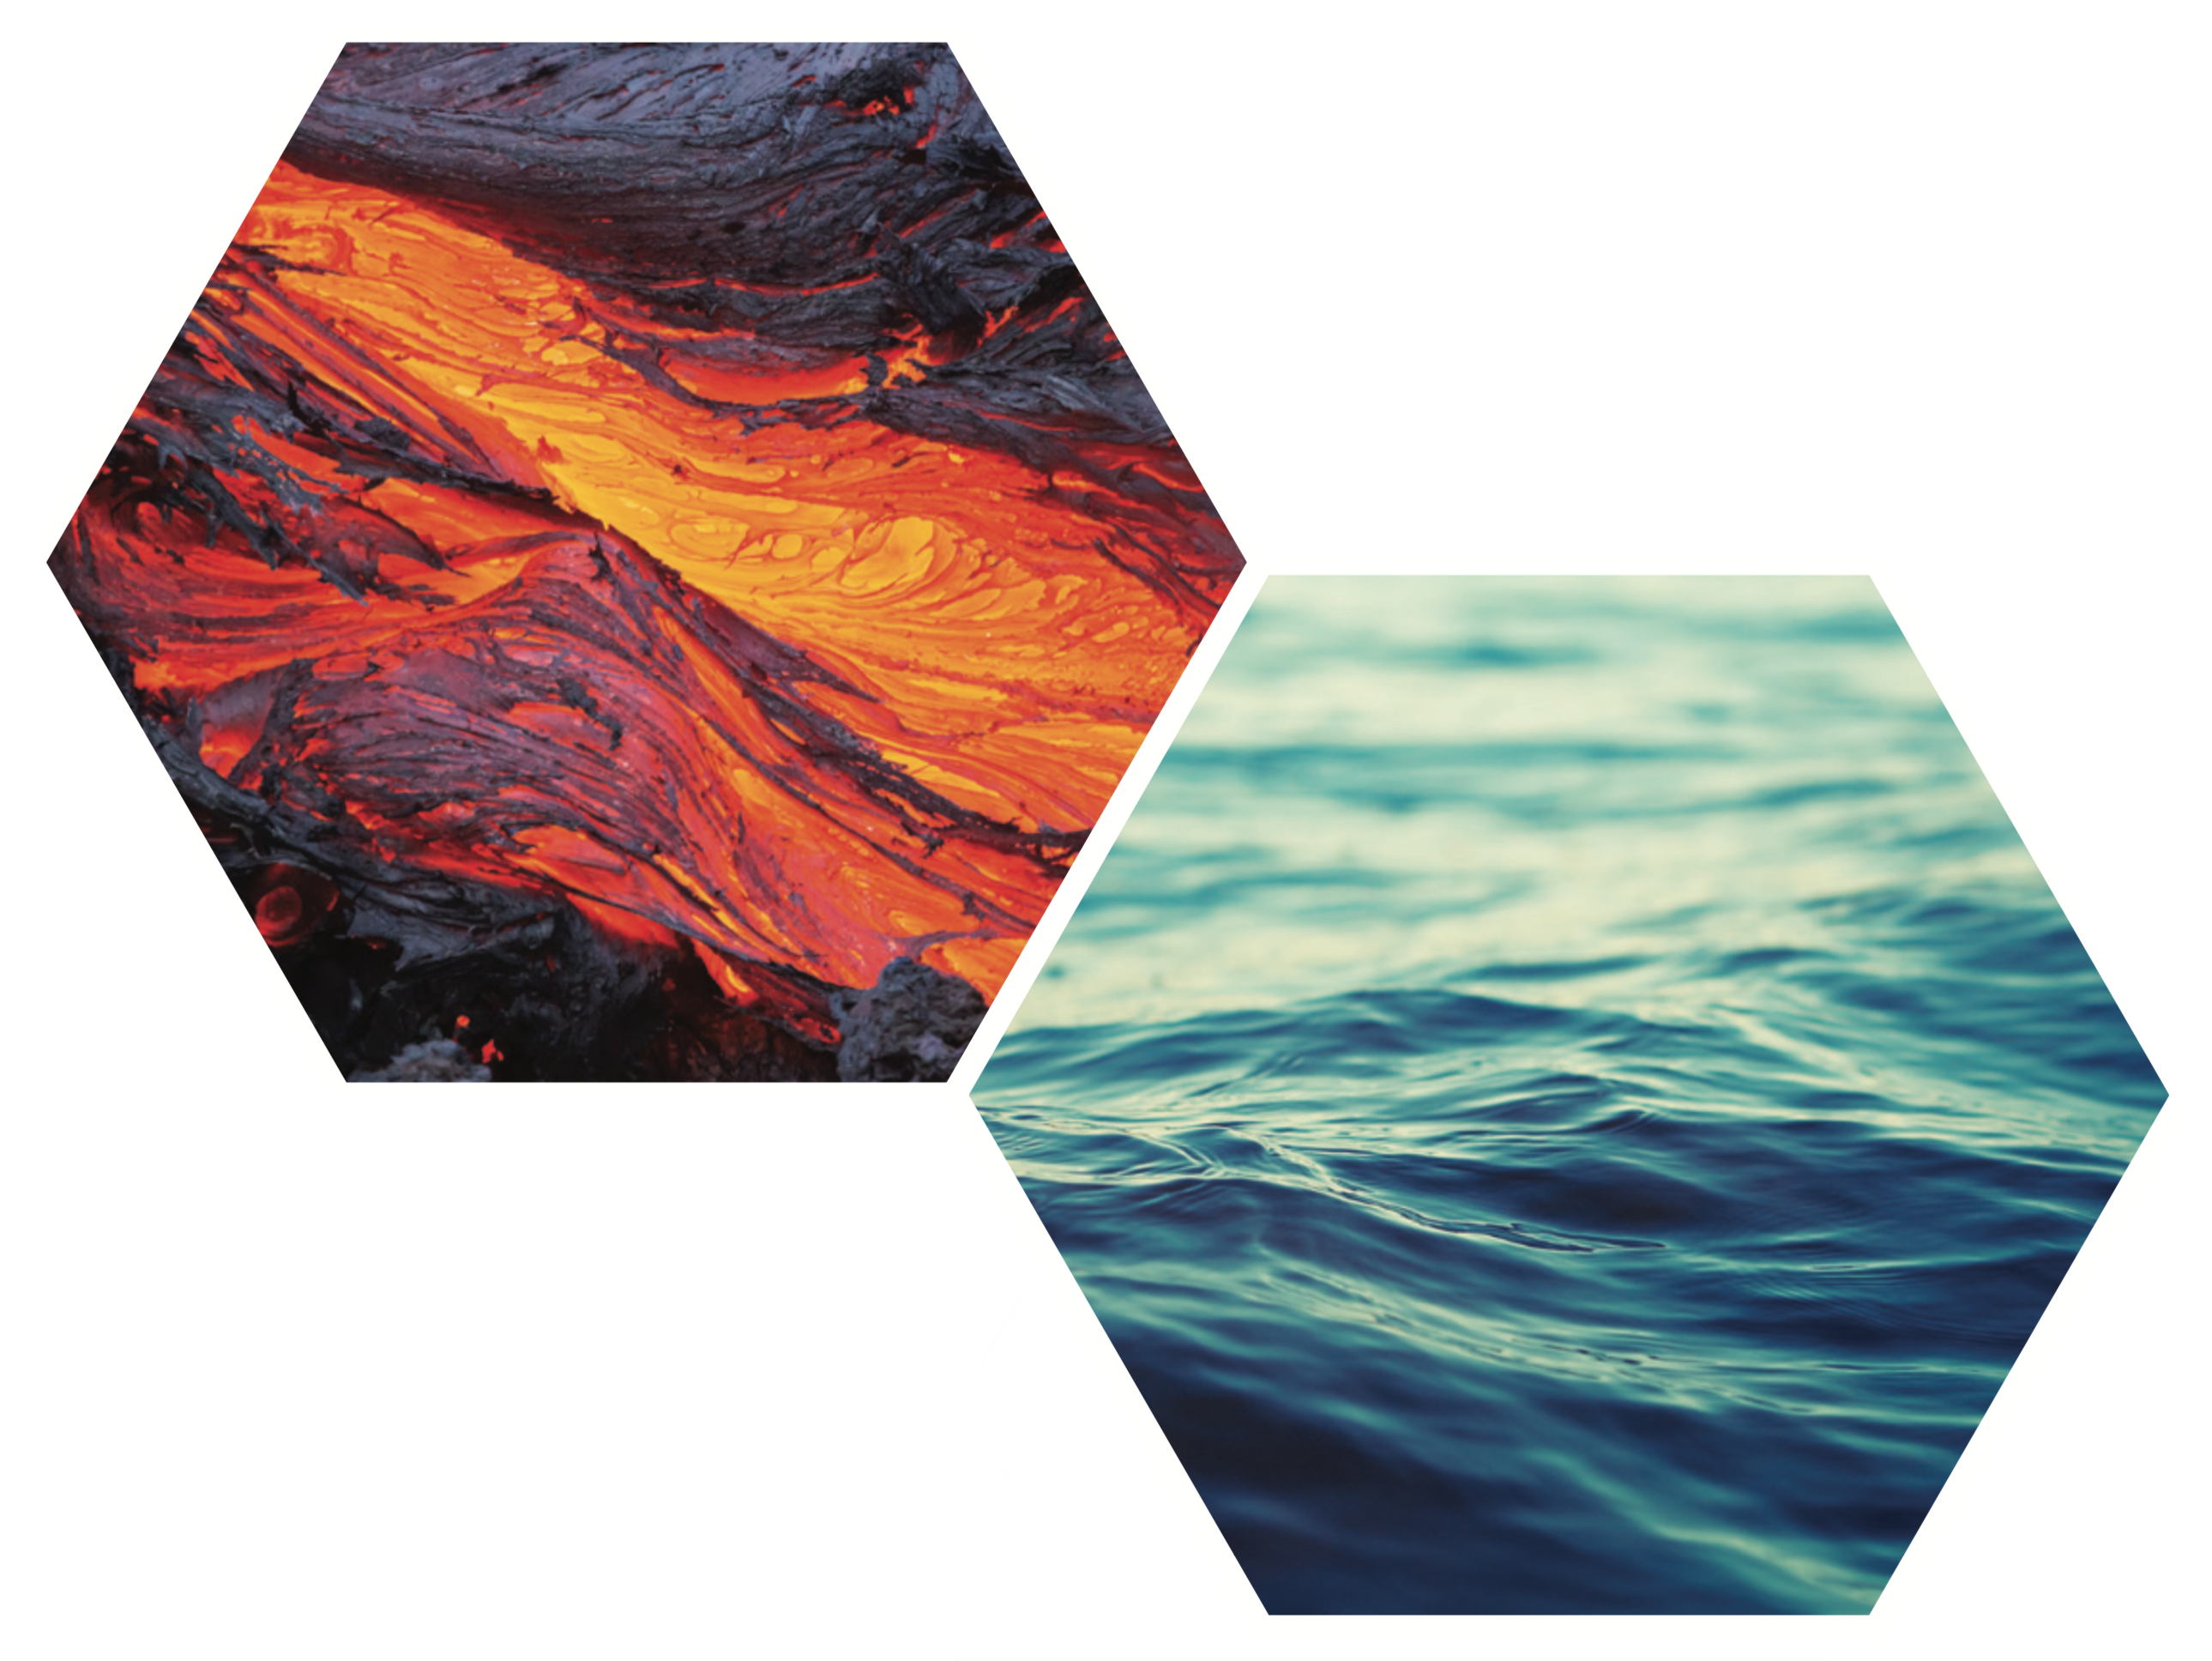 DREAM hexagon image lava water